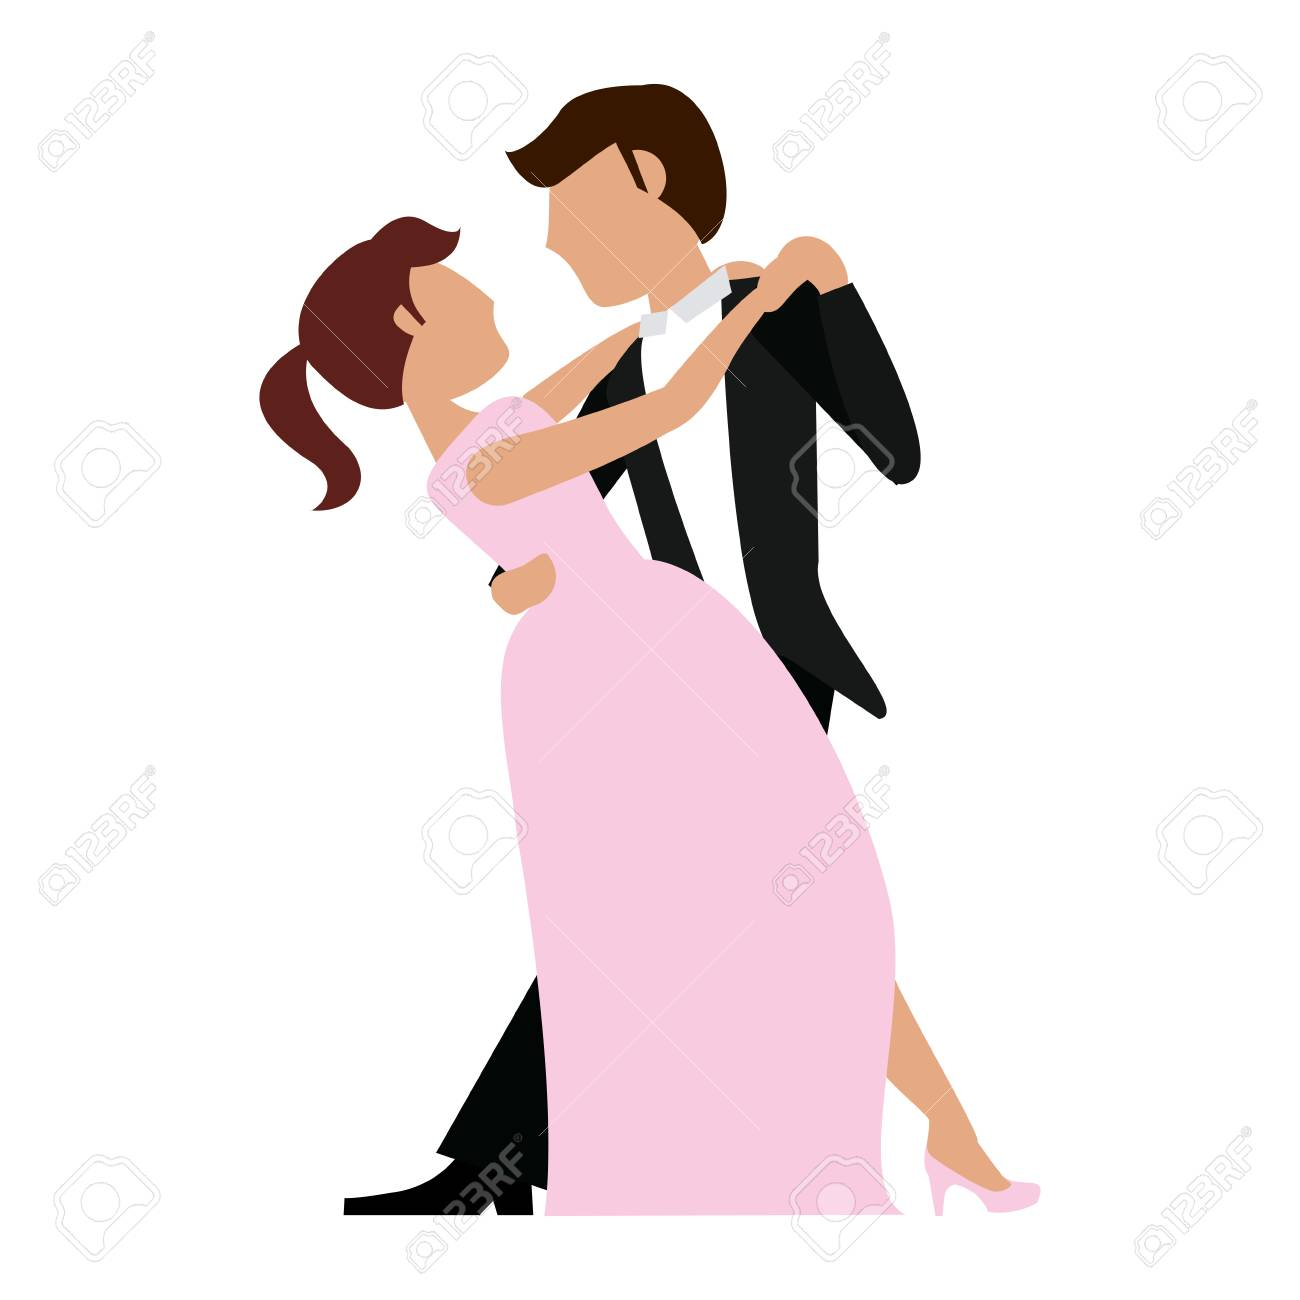 Wedding Couple Dancing Cartoon Isolated Vector Illustration Graphic Royalty Free Cliparts Vectors And Stock Illustration Image 121014010